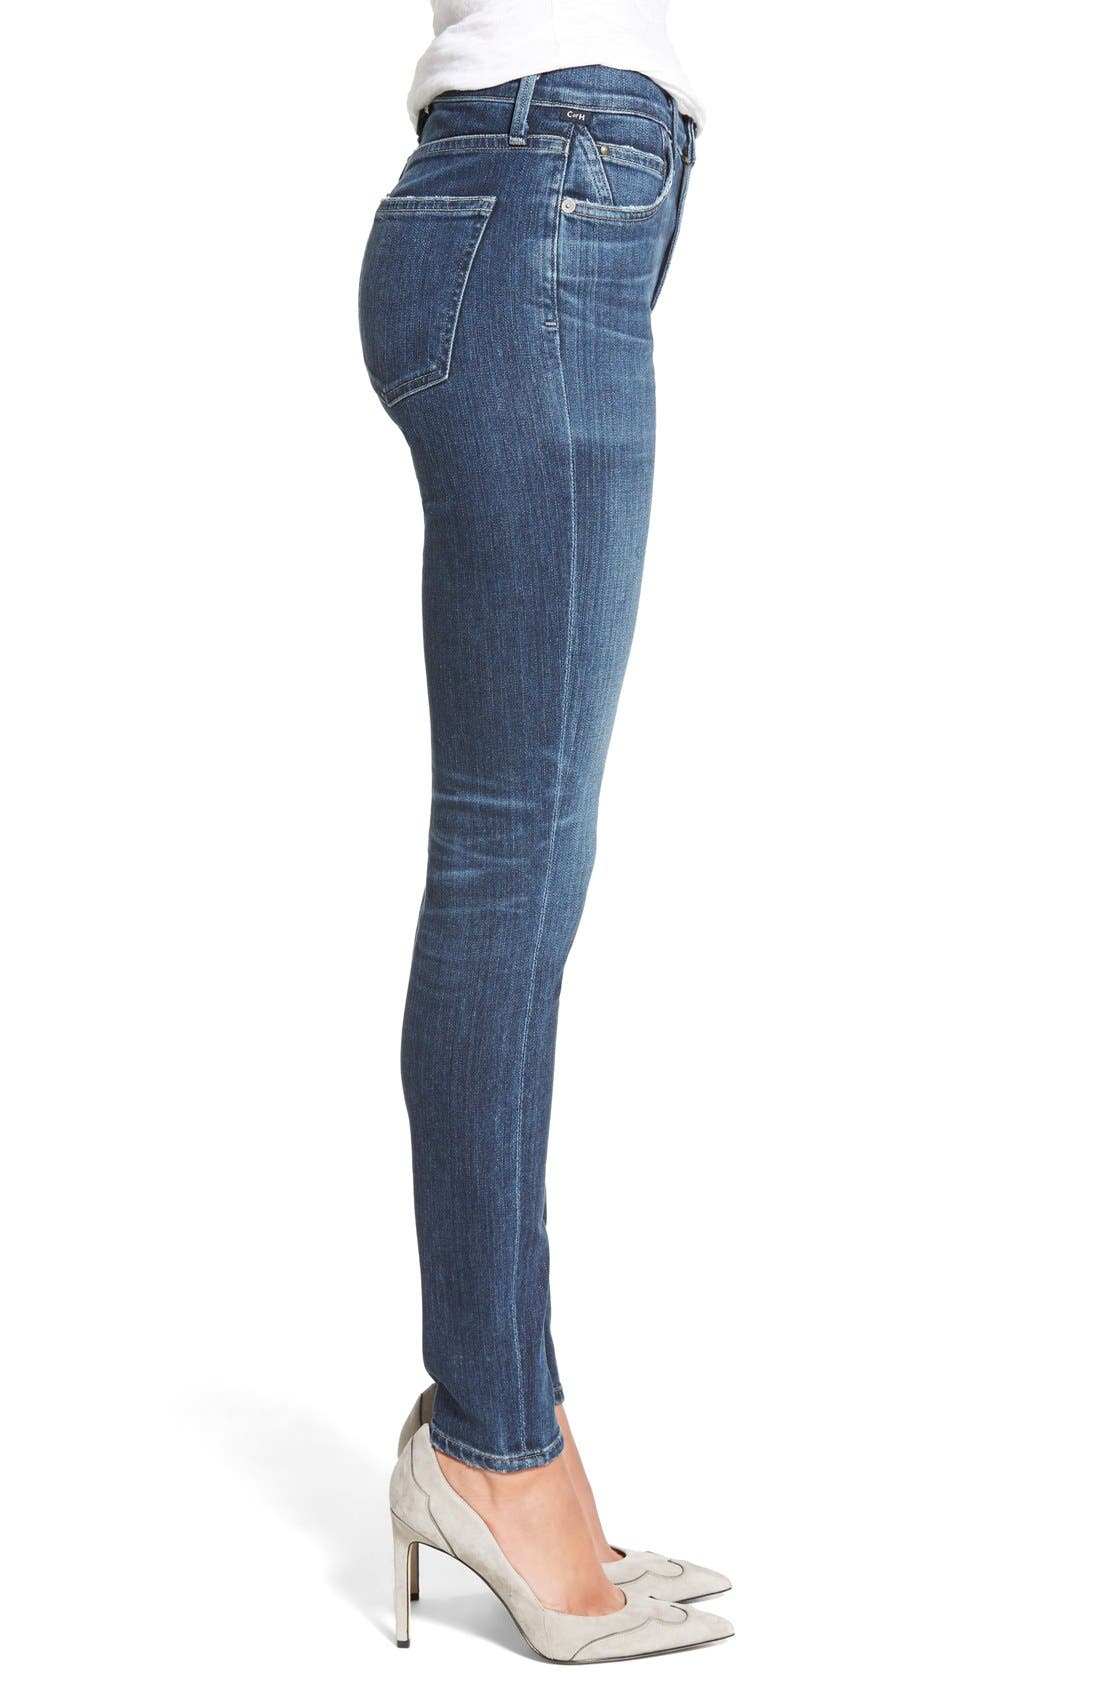 CITIZENS OF HUMANITY,                             Rocket High Waist Skinny Jeans,                             Alternate thumbnail 4, color,                             402